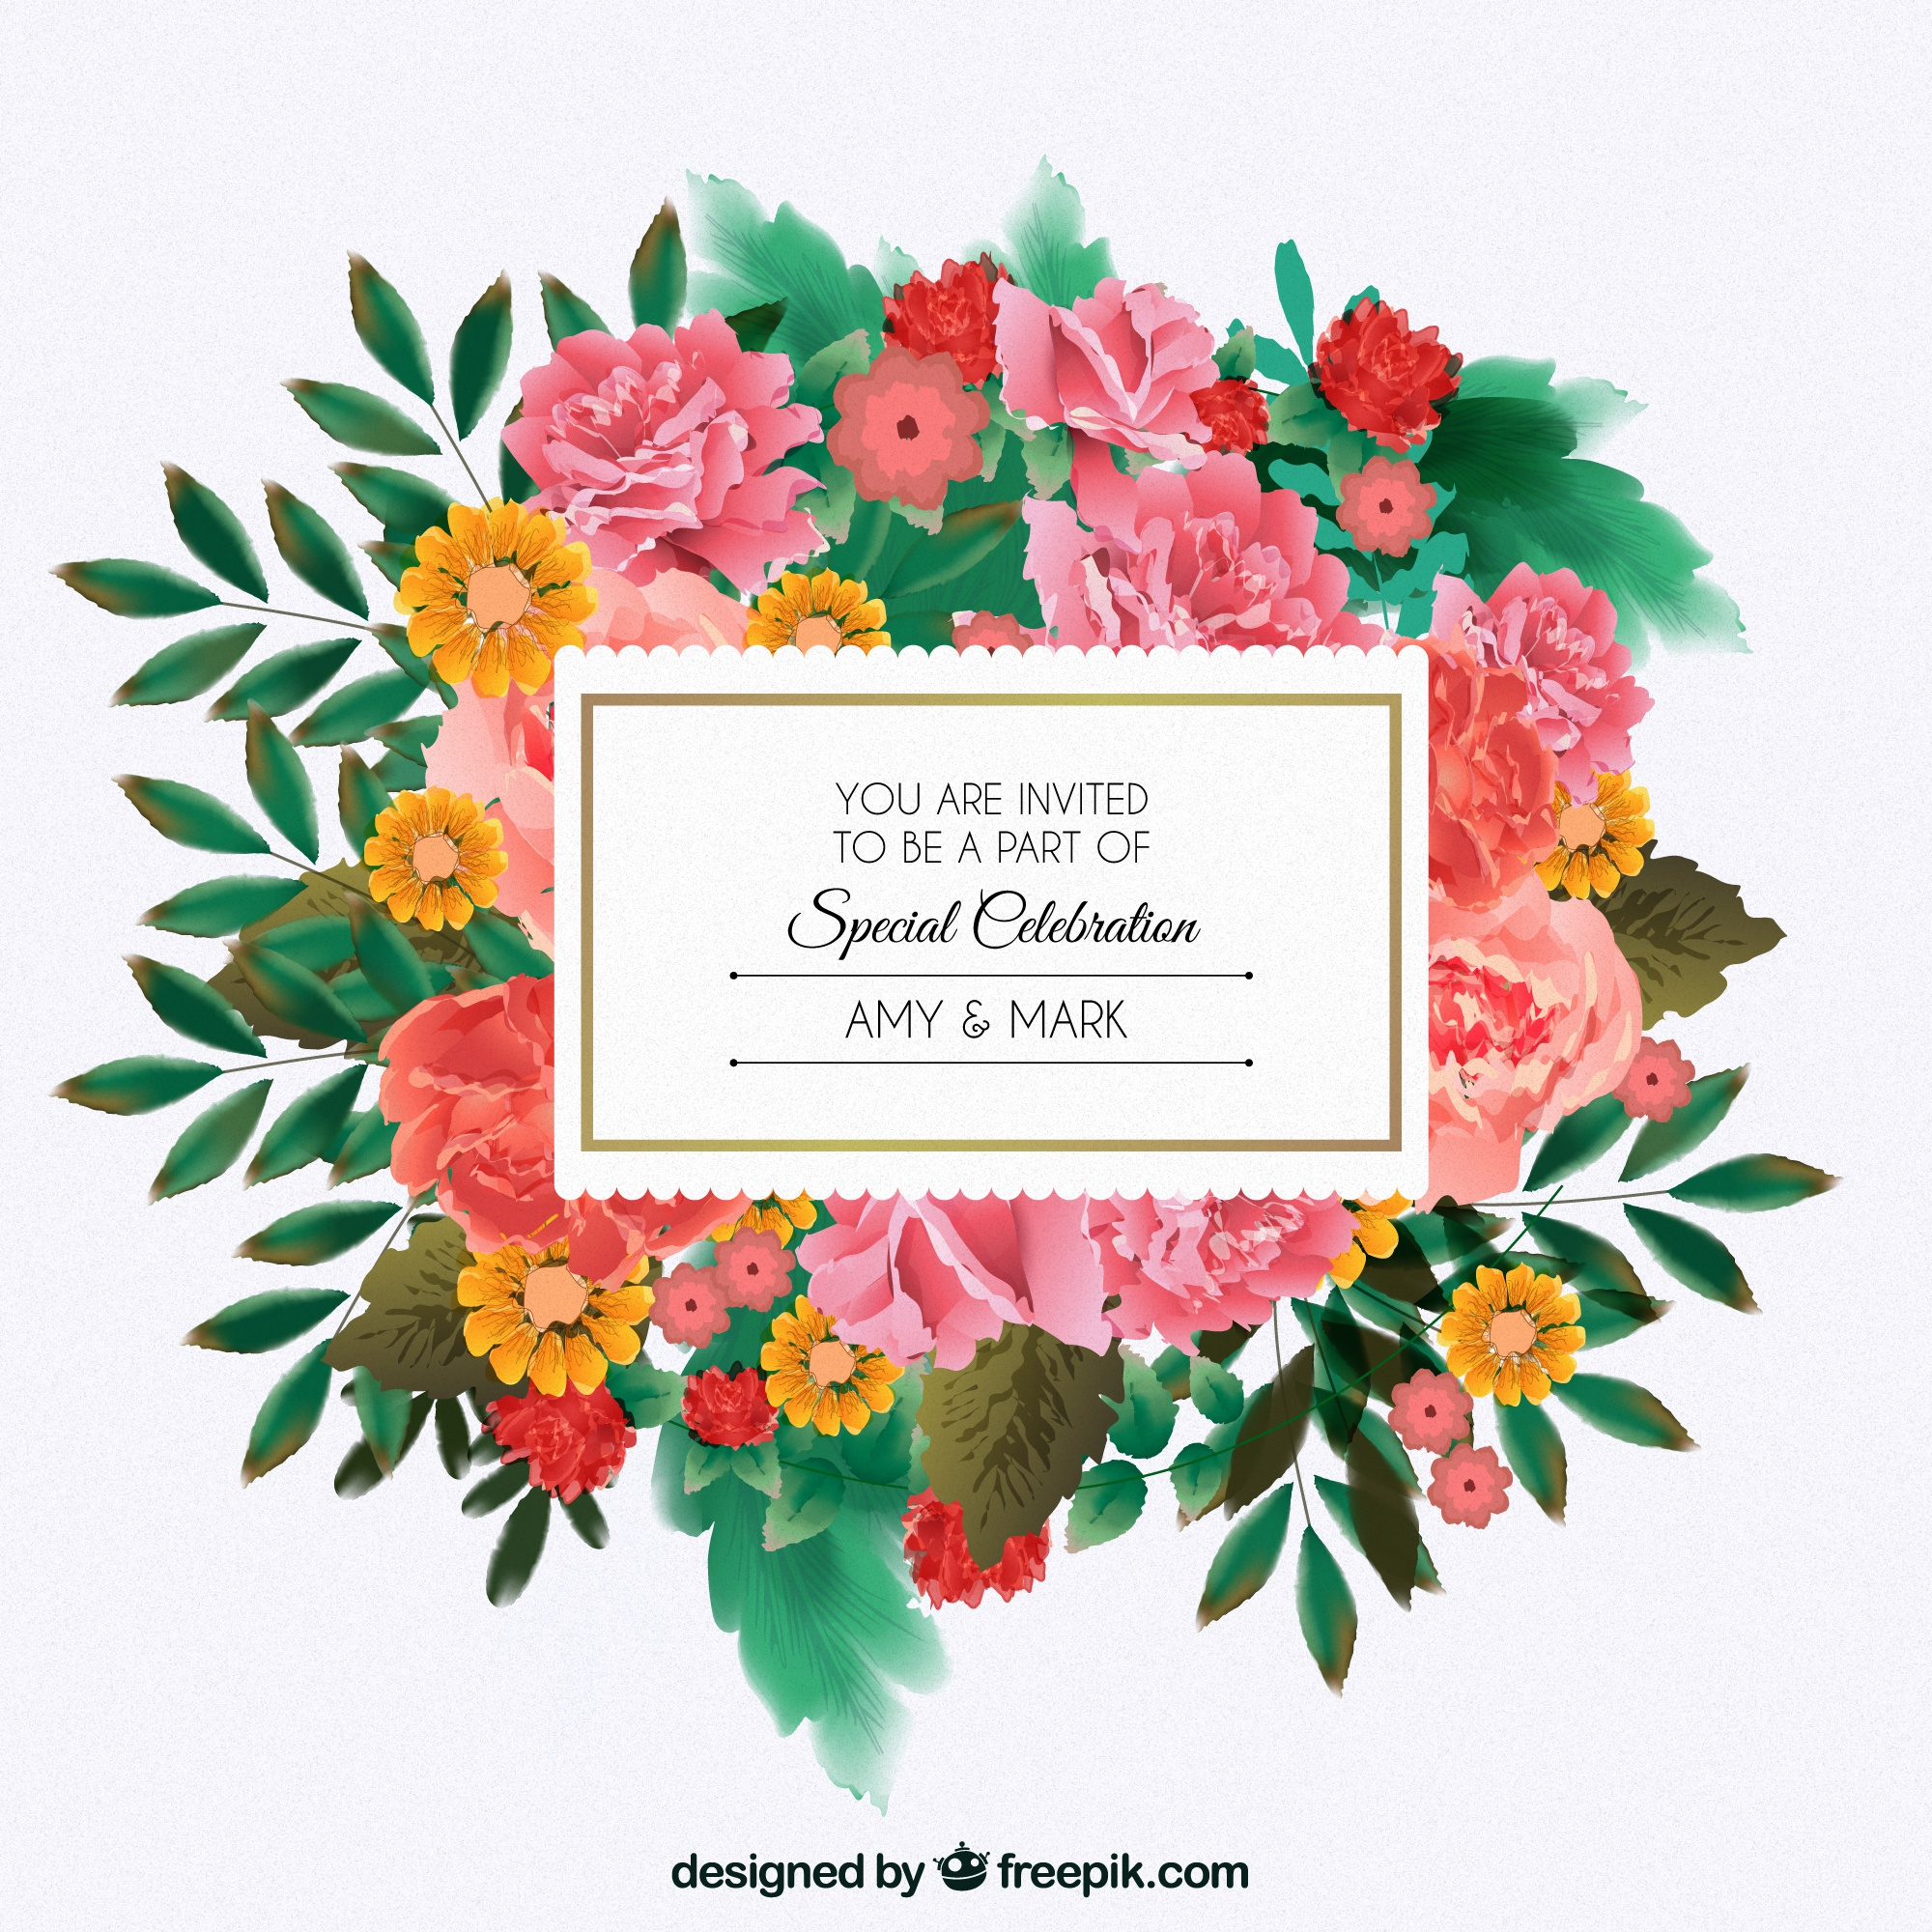 Floral invitation for wedding